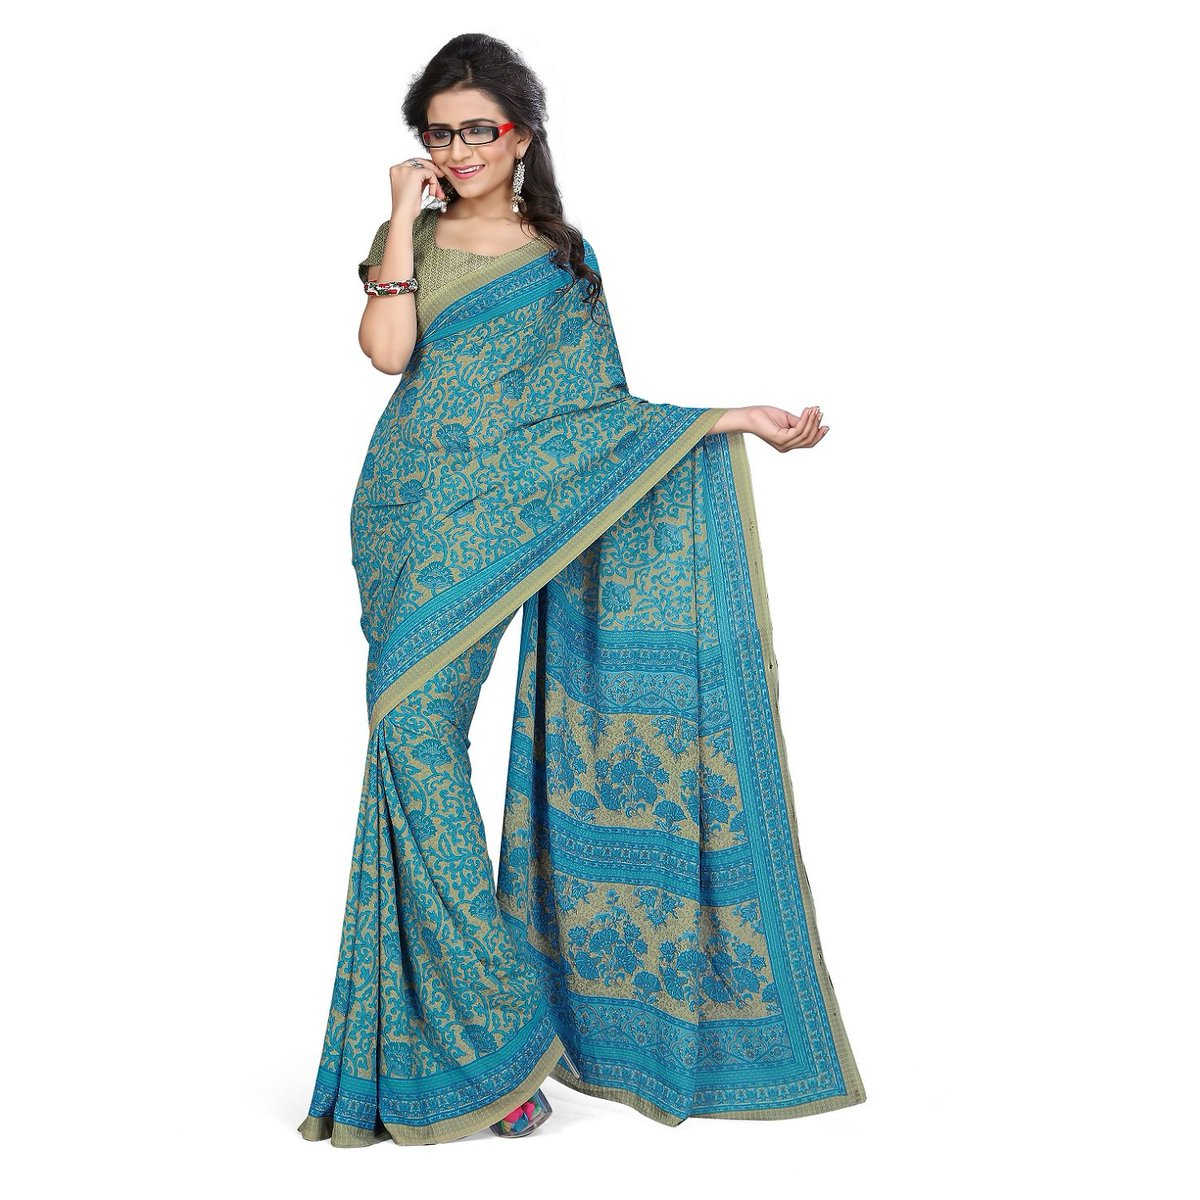 Goodfeel uniform saree on twitter httpstqojfahqgiw goodfeel pattern floral printed fabric crepe length 630 meter with blouse piece used as school teacher uniform sareehotelhospitalcorporate thecheapjerseys Gallery